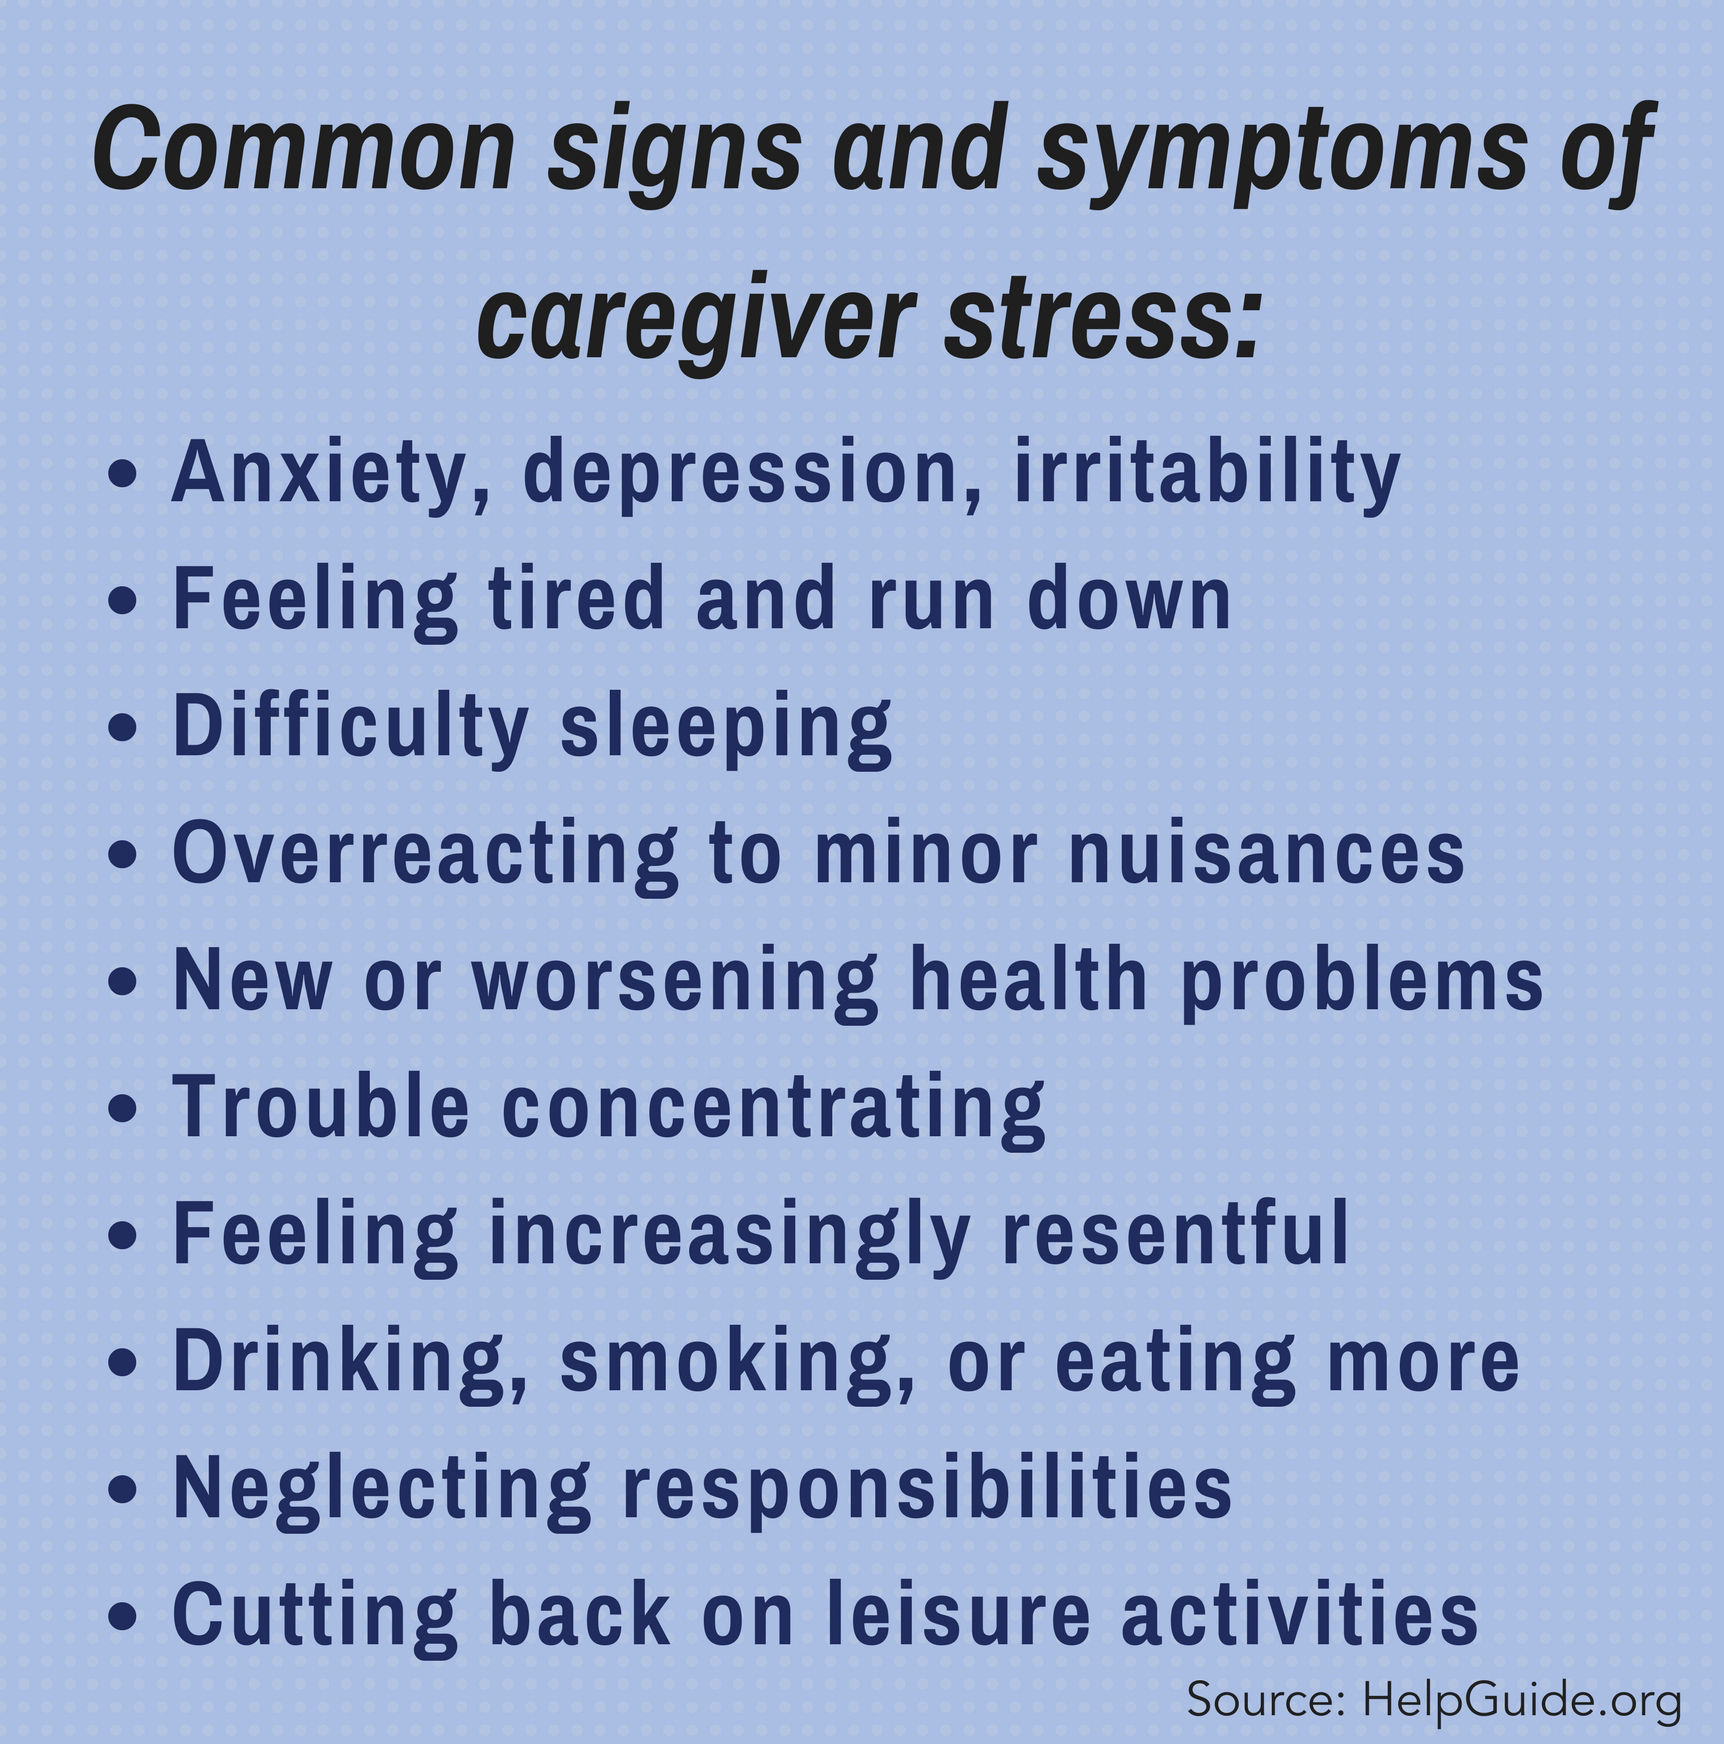 common signs and symptoms of caregiver stress